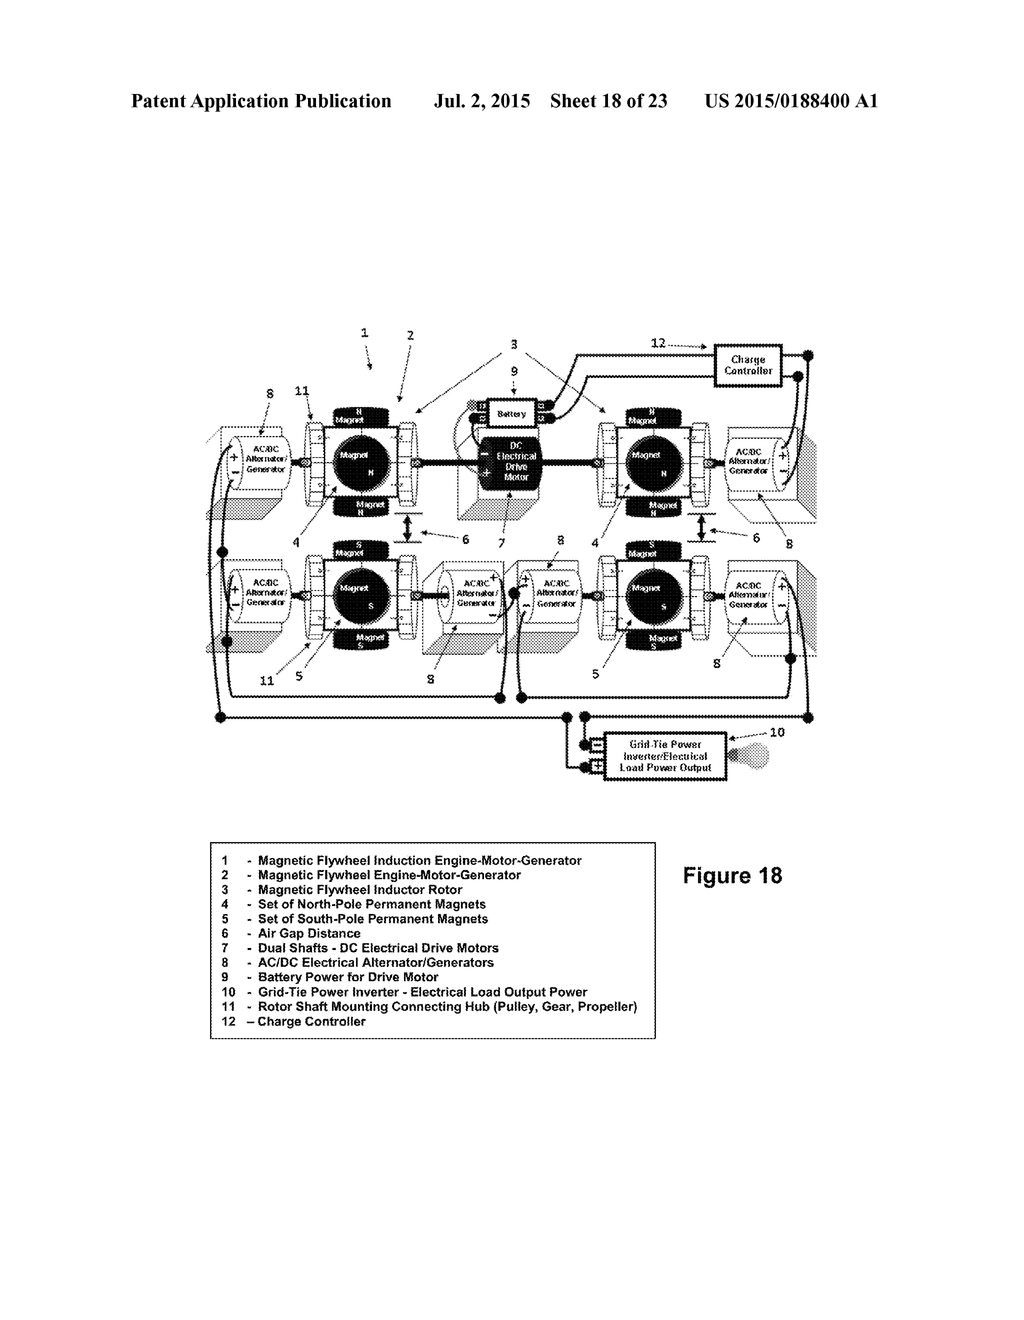 Magnetic Flywheel Induction Engine Motor Generator Diagram Schematic And Image 19